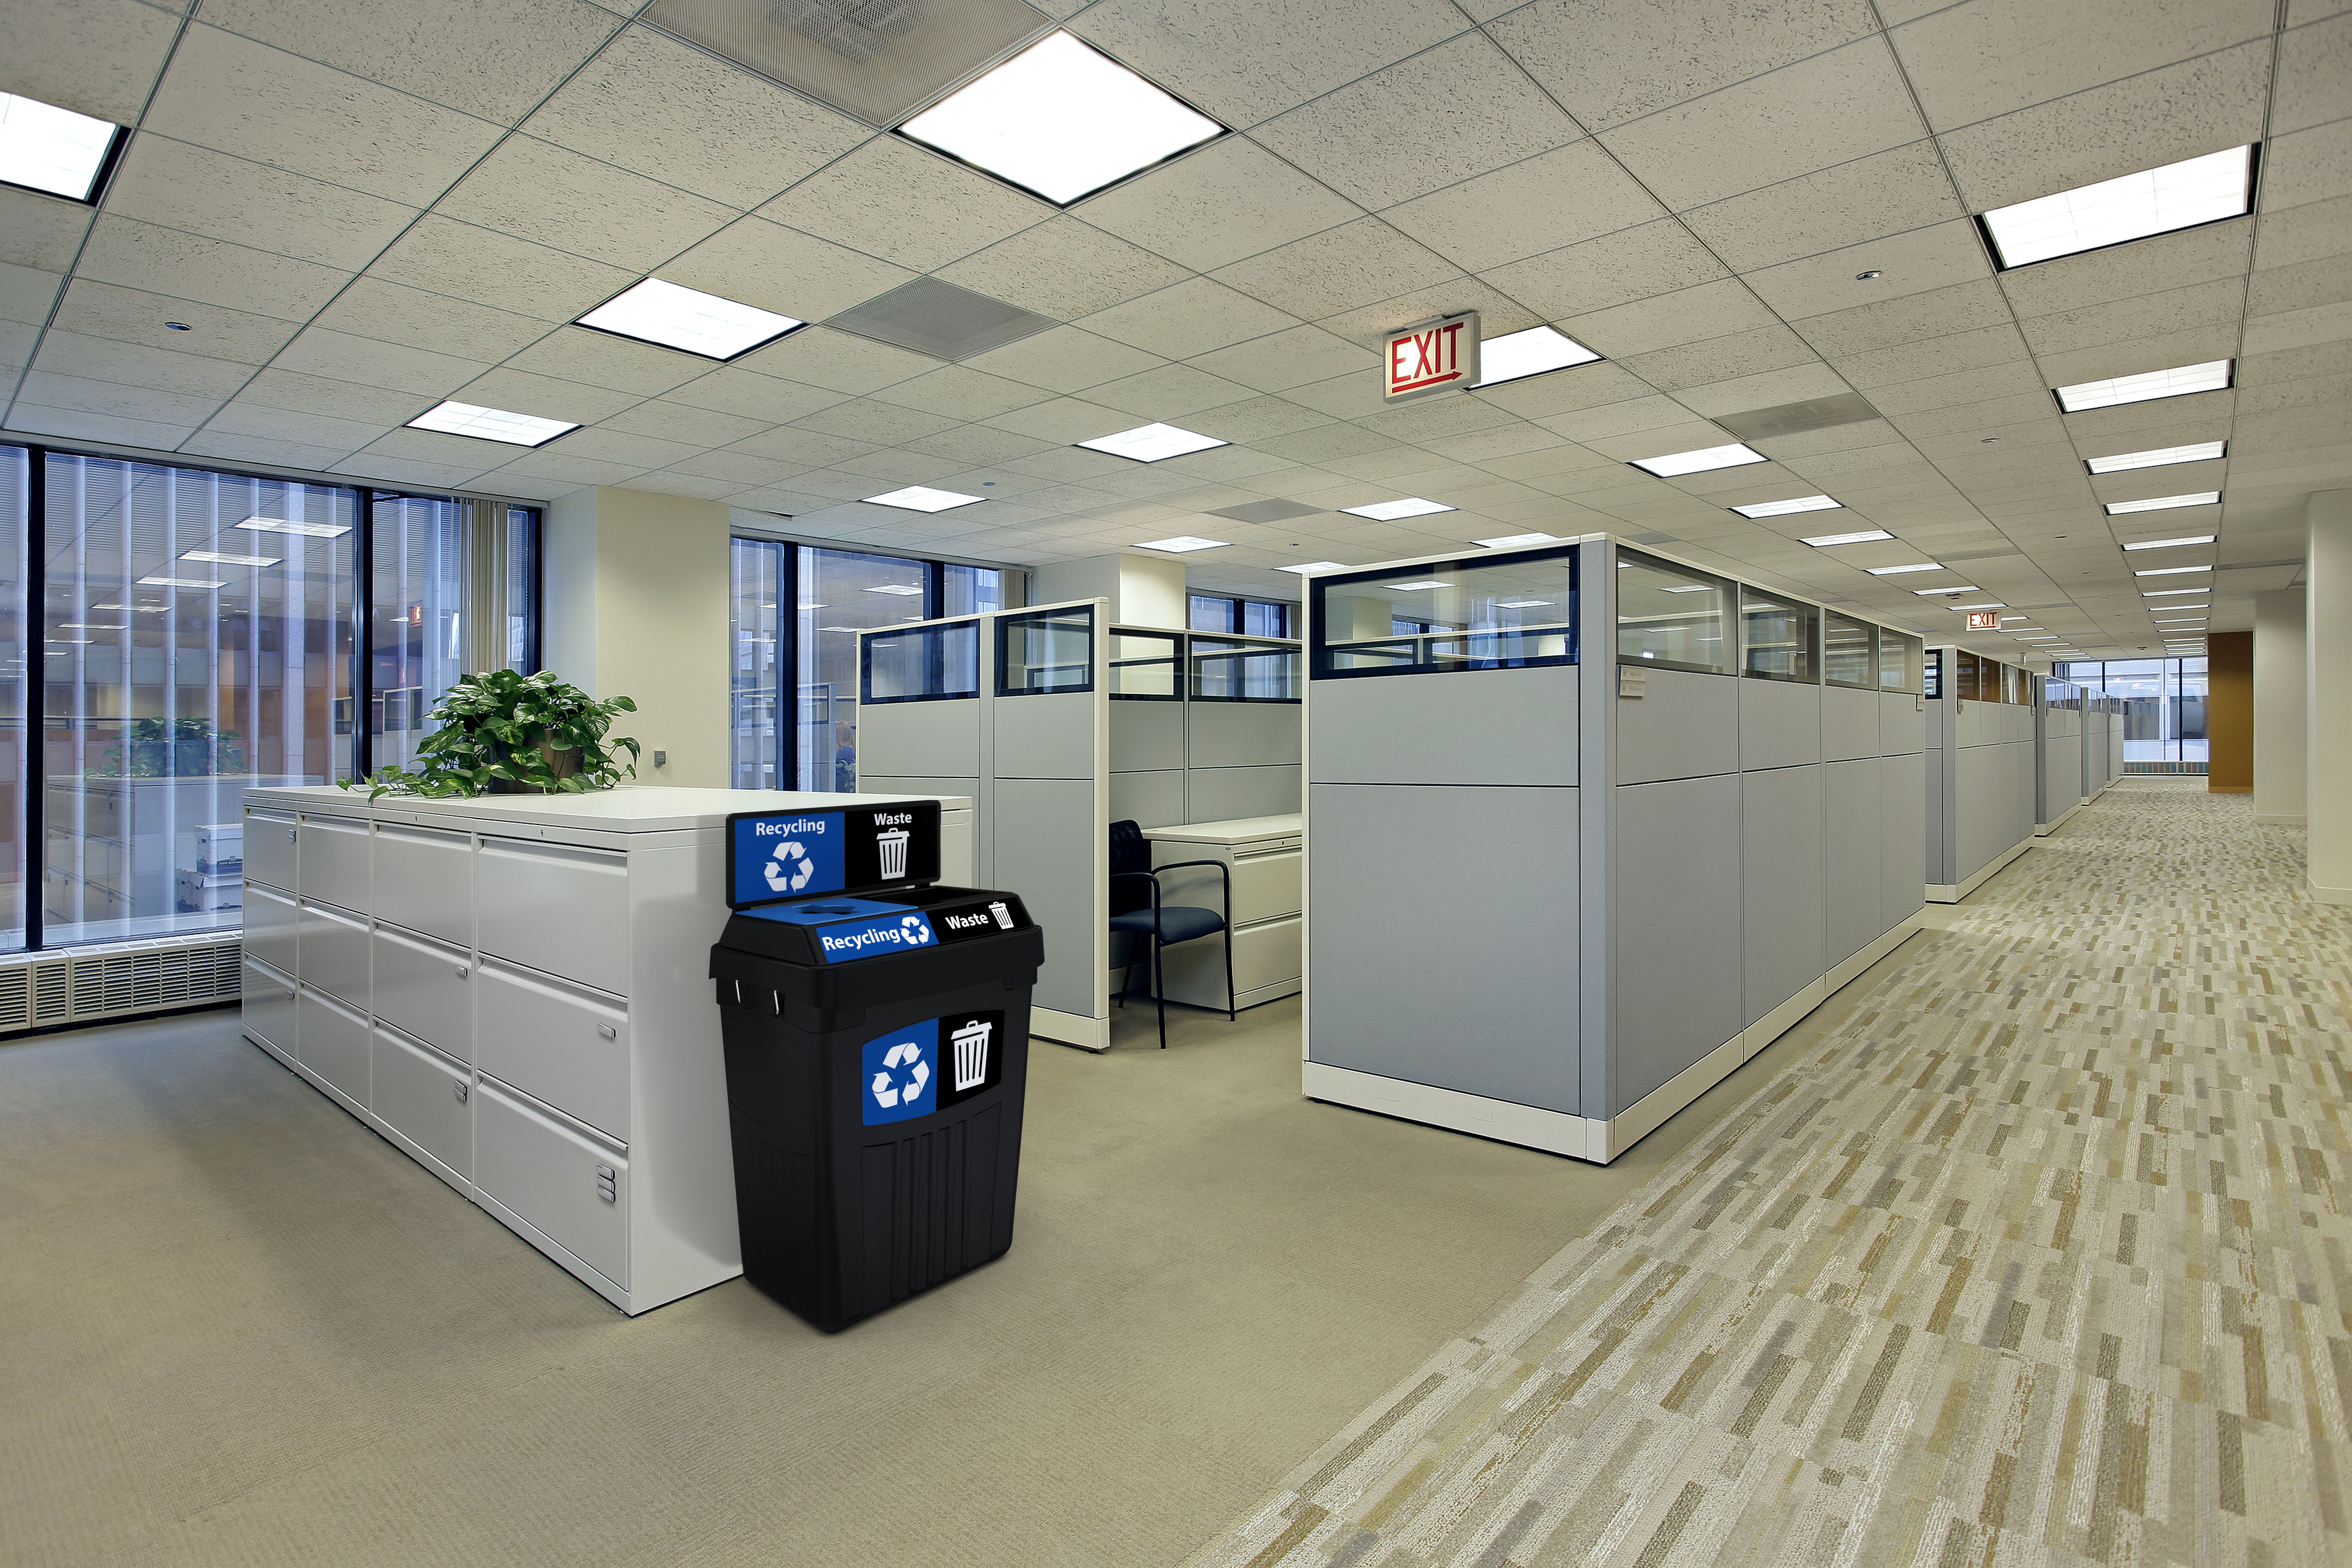 10 Tips To Increase Your Office Recycling